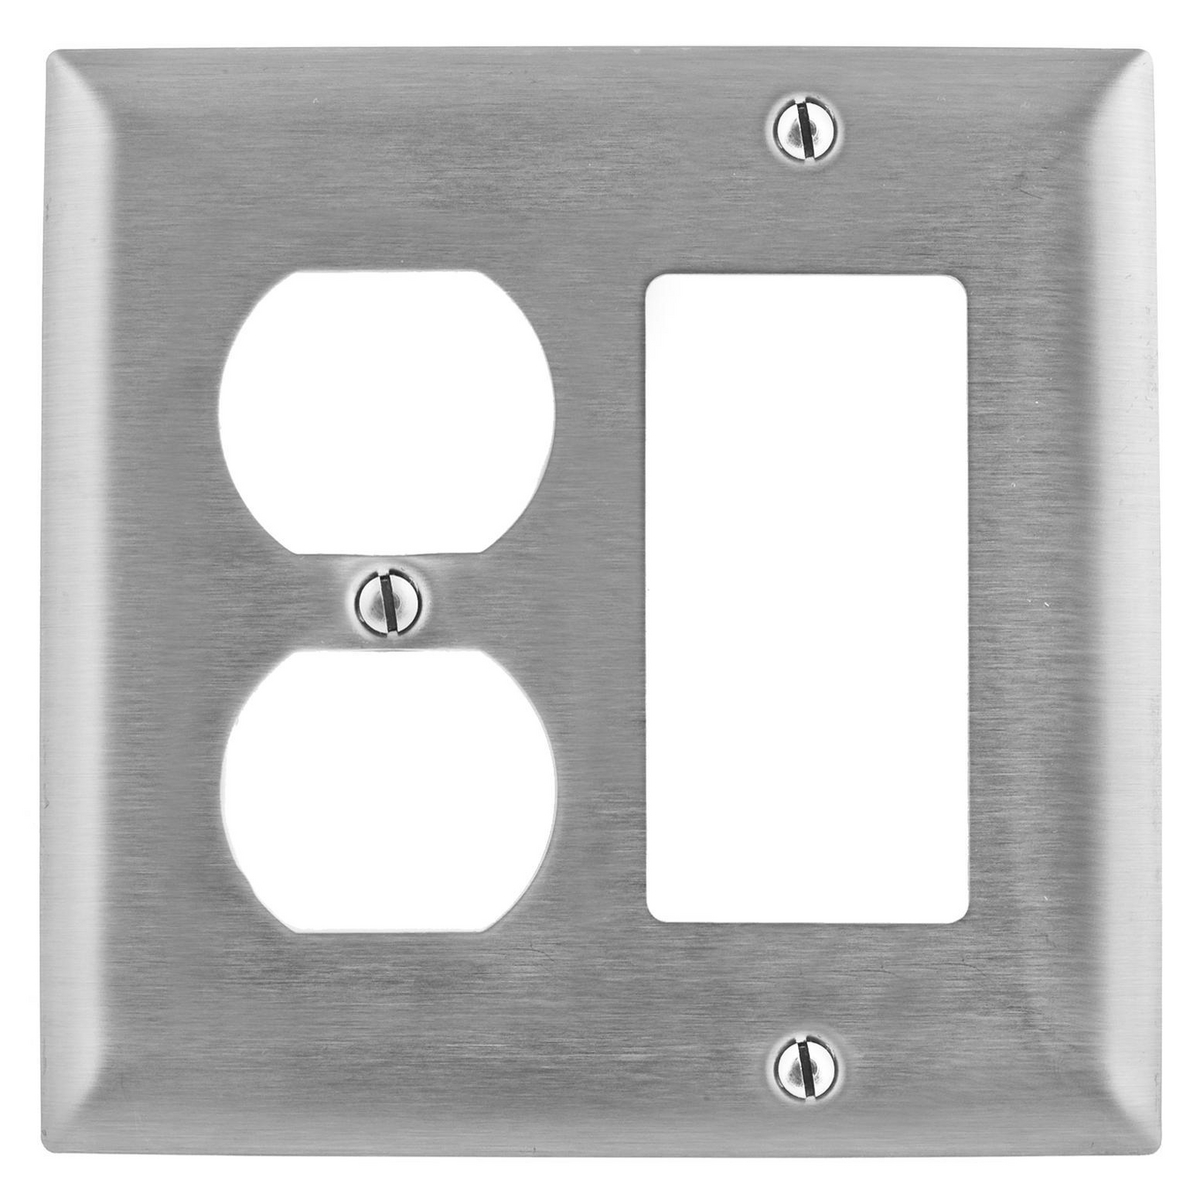 Hubbell SS826 2-Gang Stainless Steel 1-Decorator Switch 1-Duplex Receptacle Screw Mount Combination Wallplate